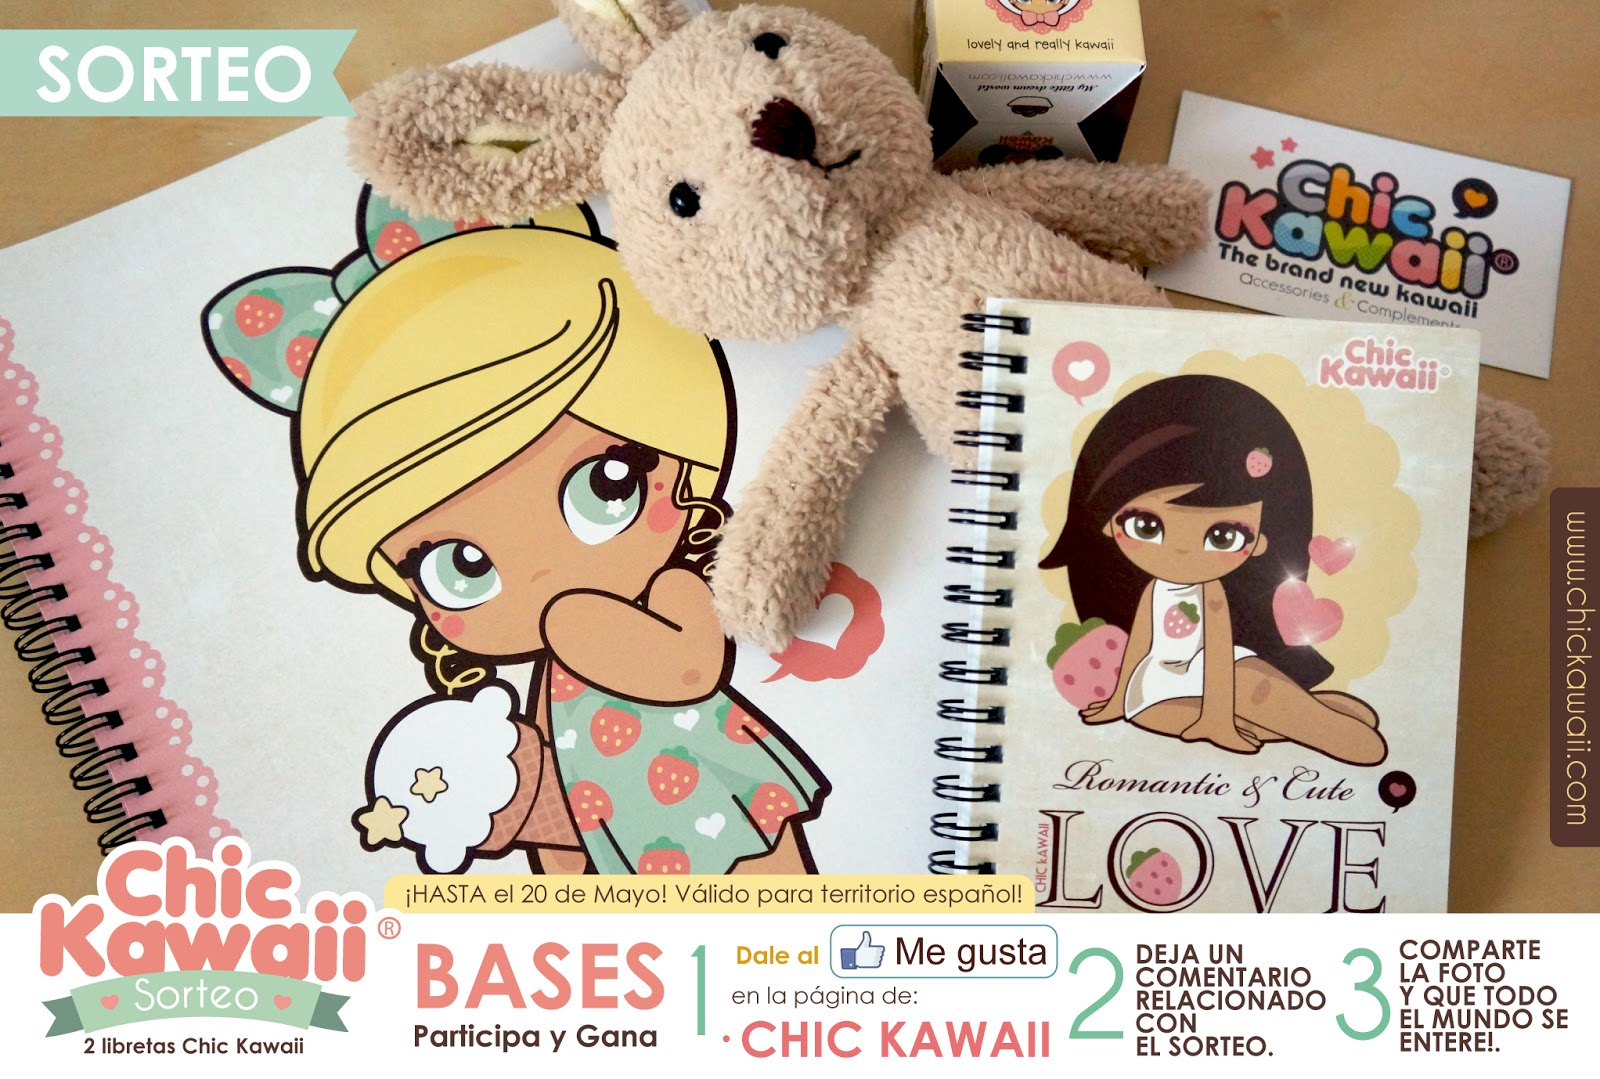 http://www.facebook.com/plugins/like.php?href=https%3A%2F%2Fwww.facebook.com%2Fpages%2FCHIC-KAWAII%2F125958937487425&width&layout=standard&action=like&show_faces=true&share=true&height=80